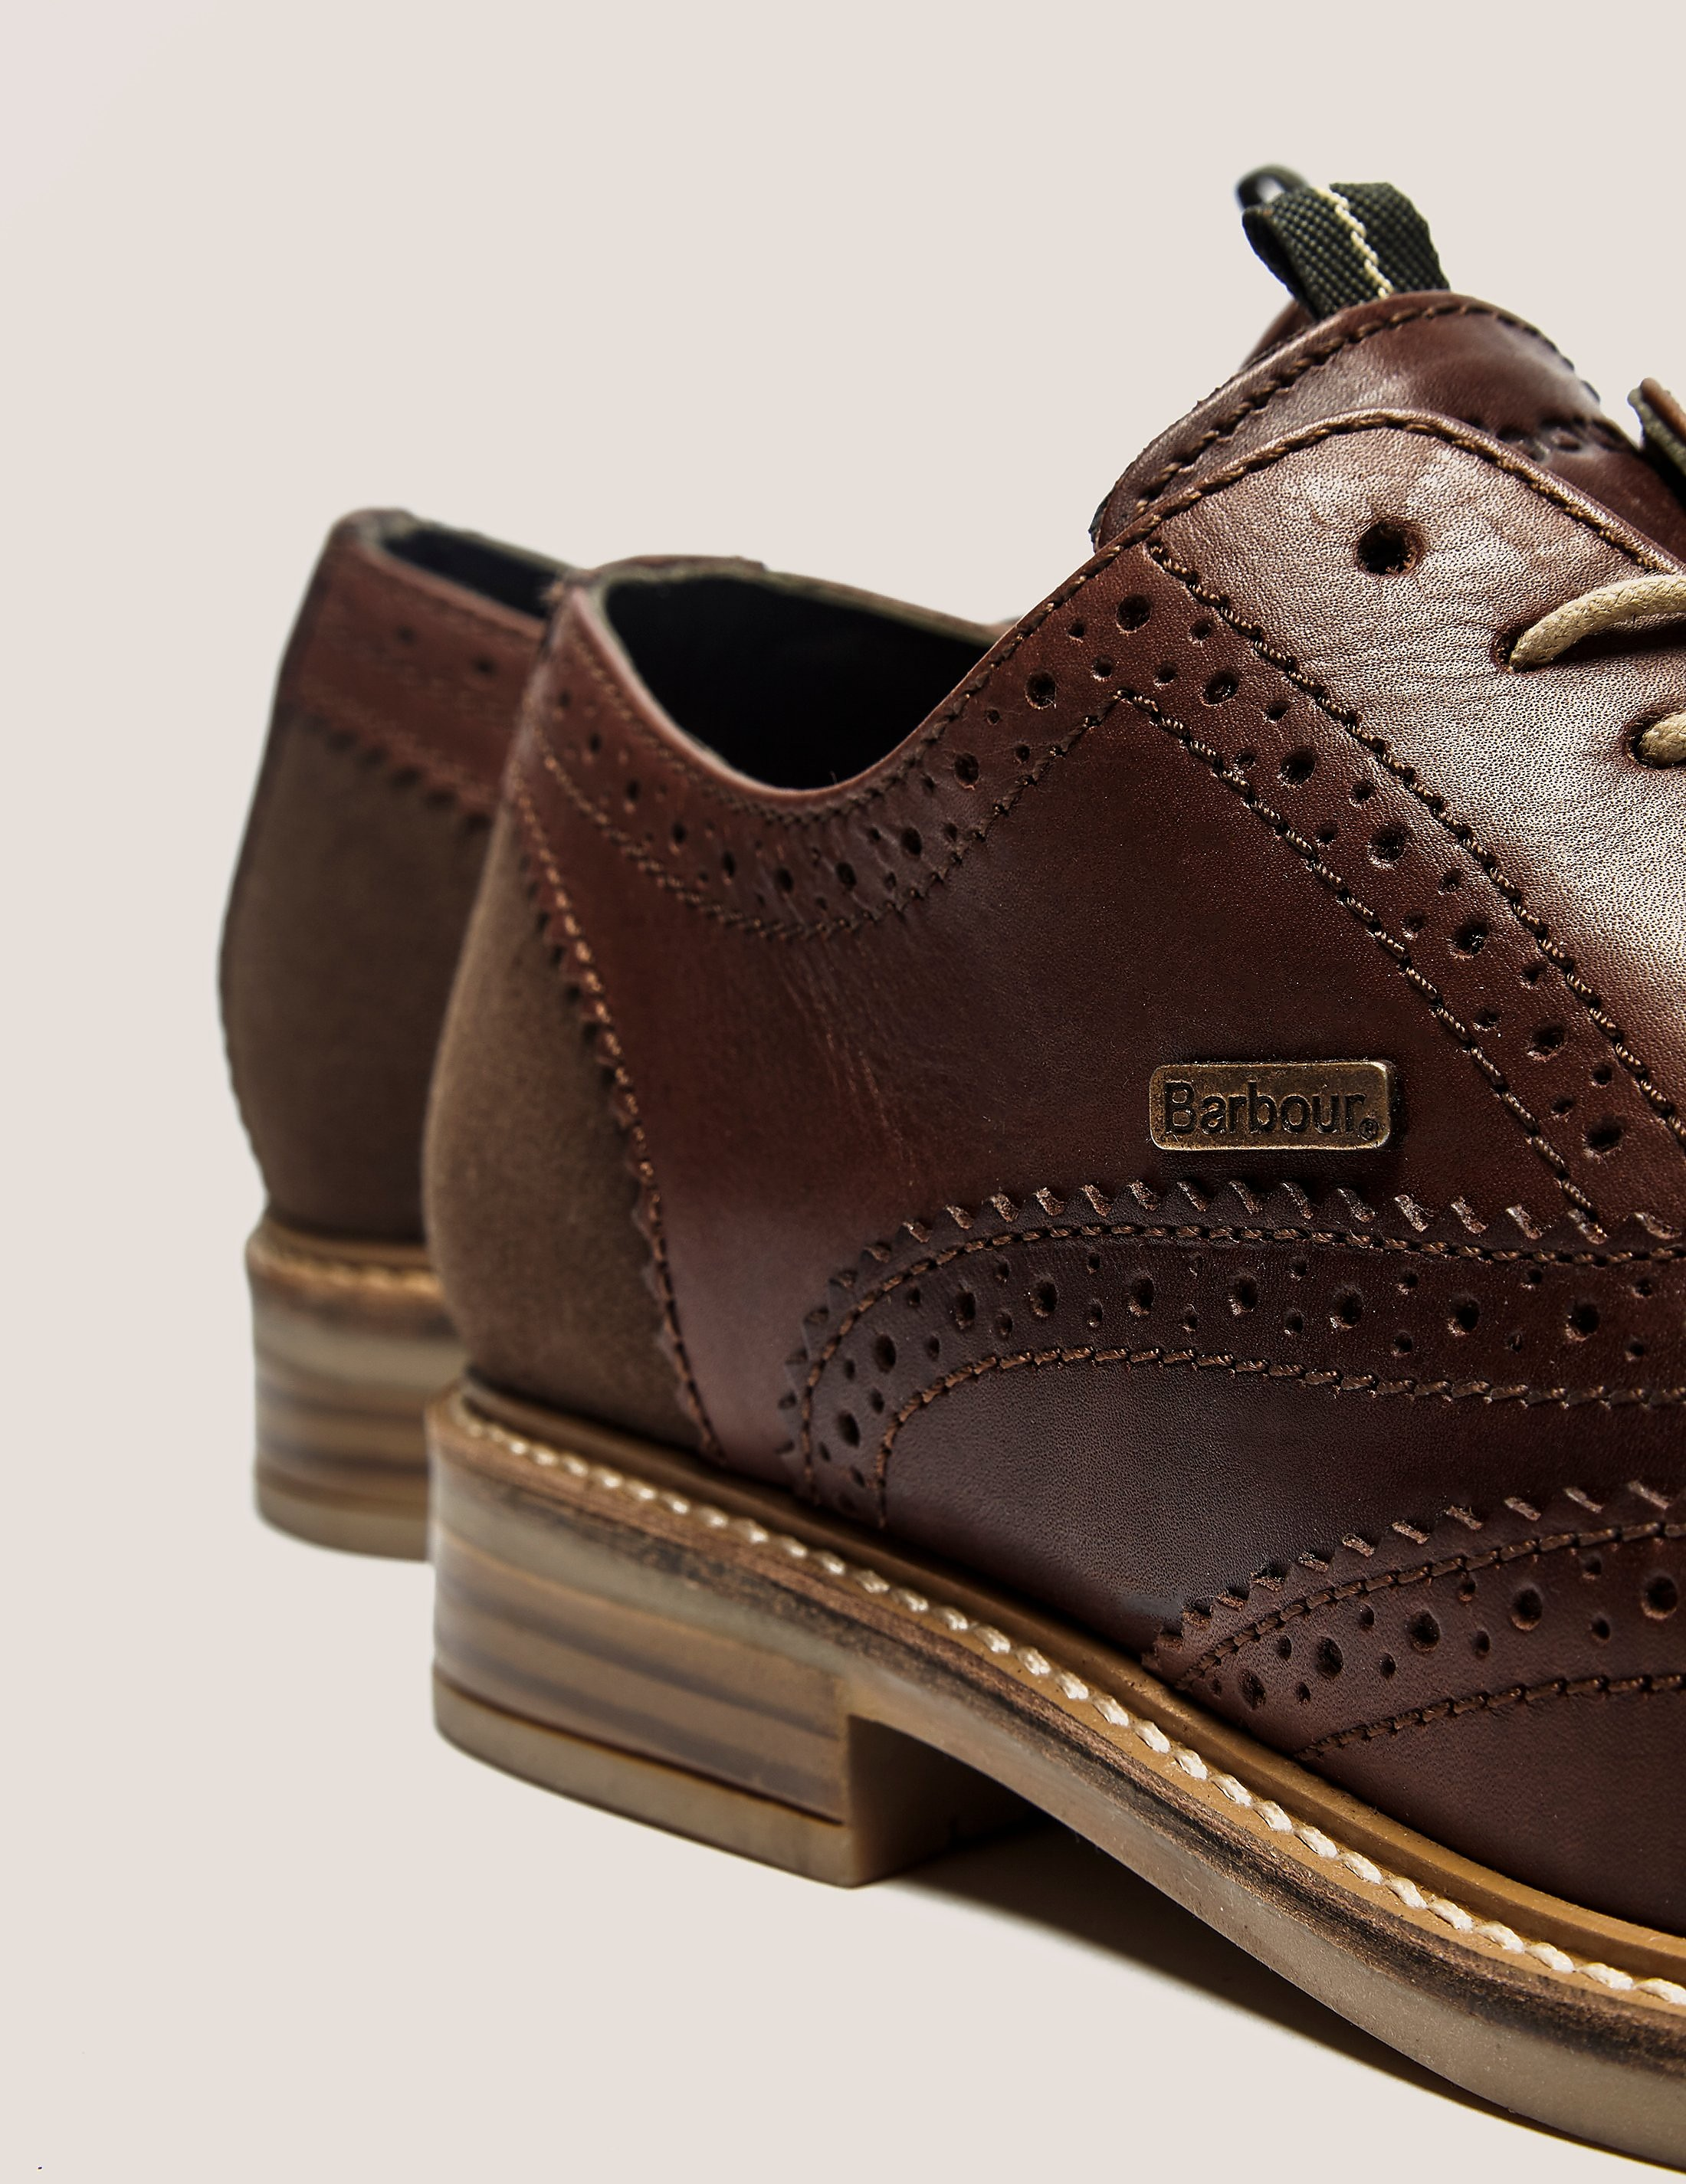 Barbour Redcar Brogue